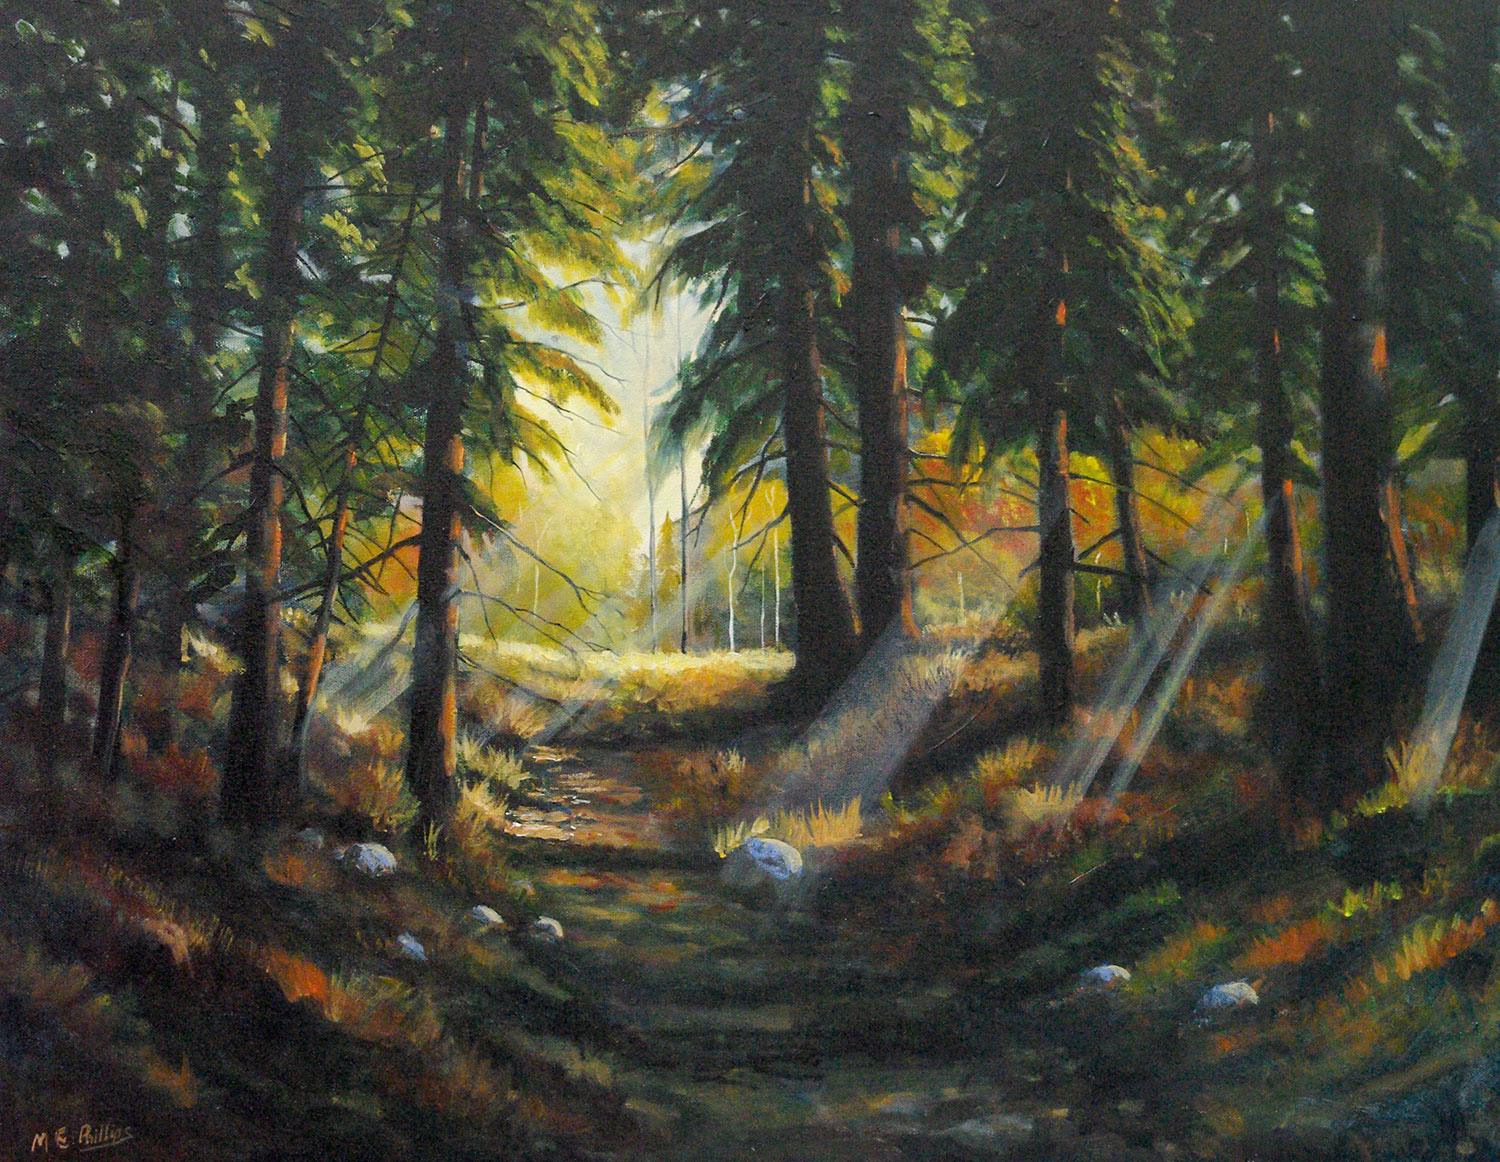 Towards_The_Light_$3600_Framed_Oil_22x28